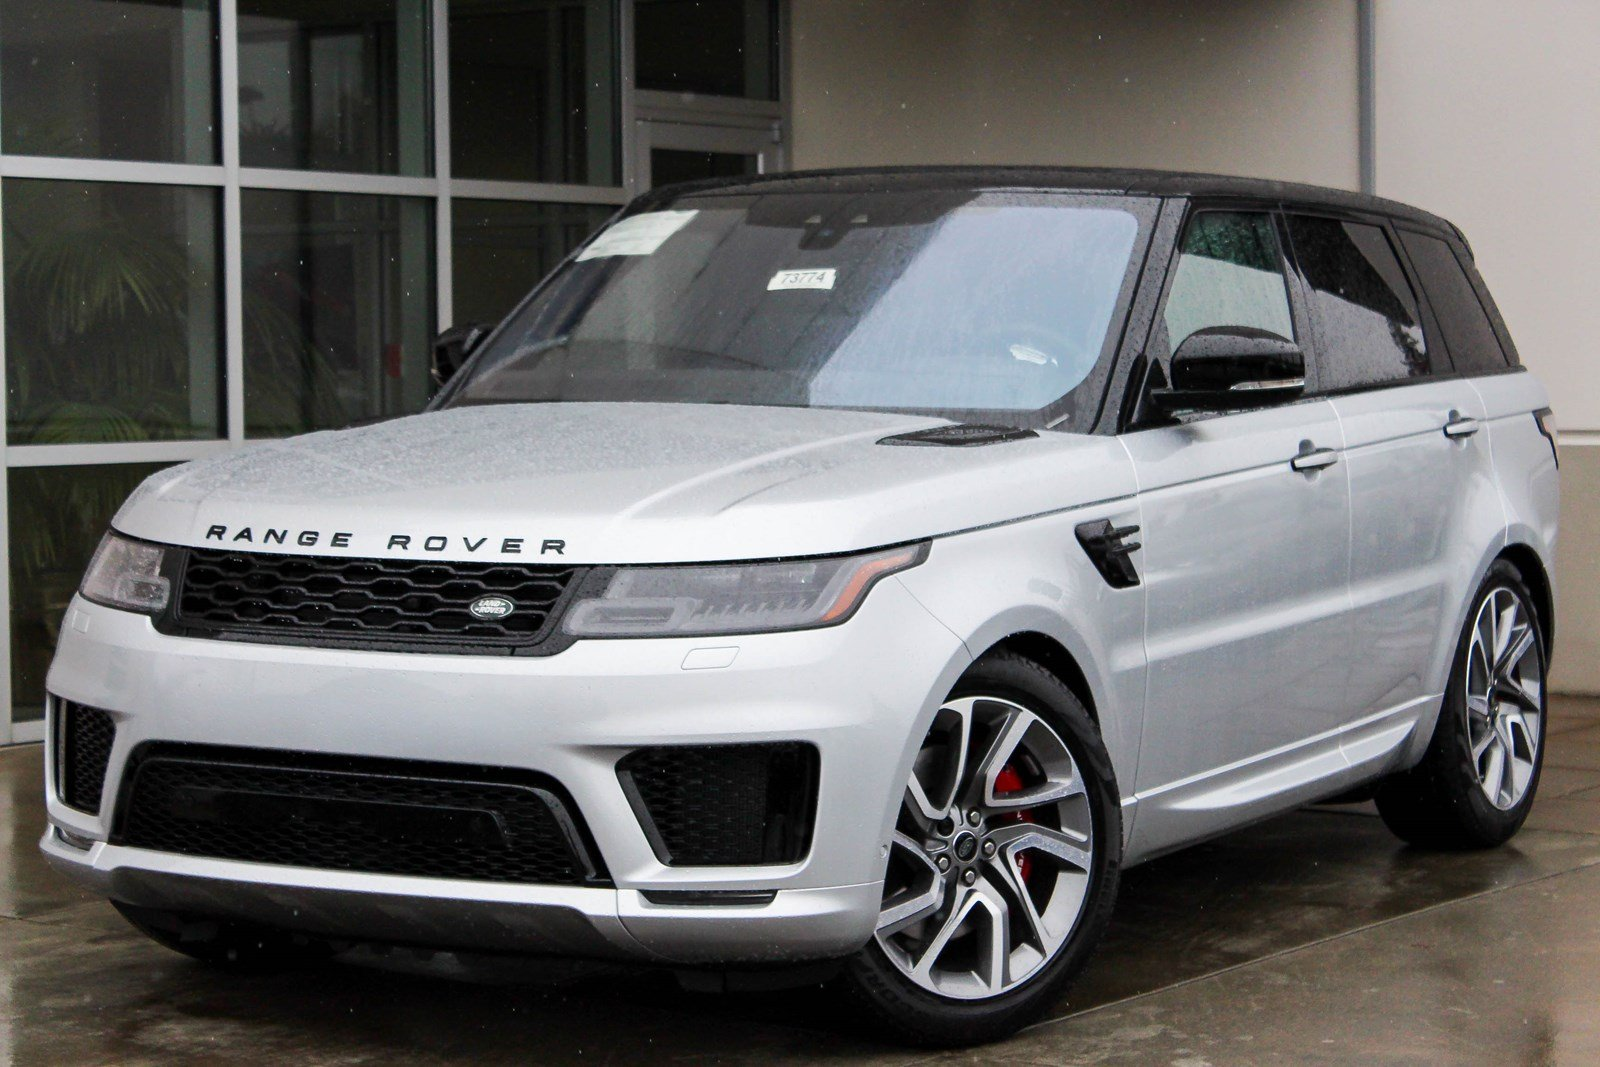 Land Rover Bellevue >> New 2018 Land Rover Range Rover Sport HSE Dynamic Sport Utility in Bellevue #73774 | Land Rover ...